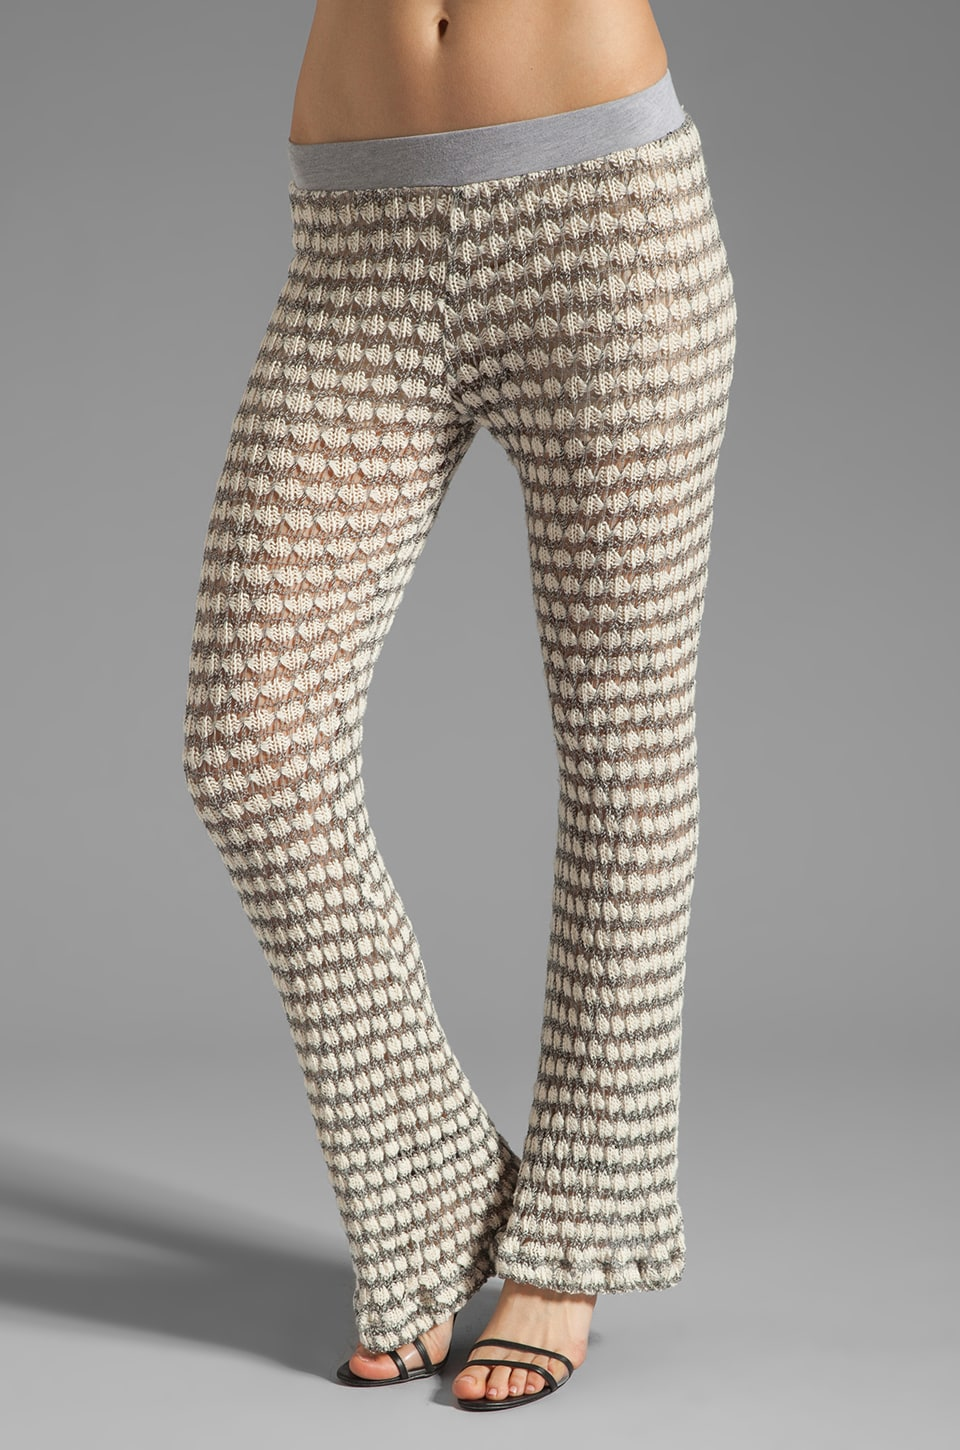 WOODLEIGH Jaqueline Pants in Cream Stripe